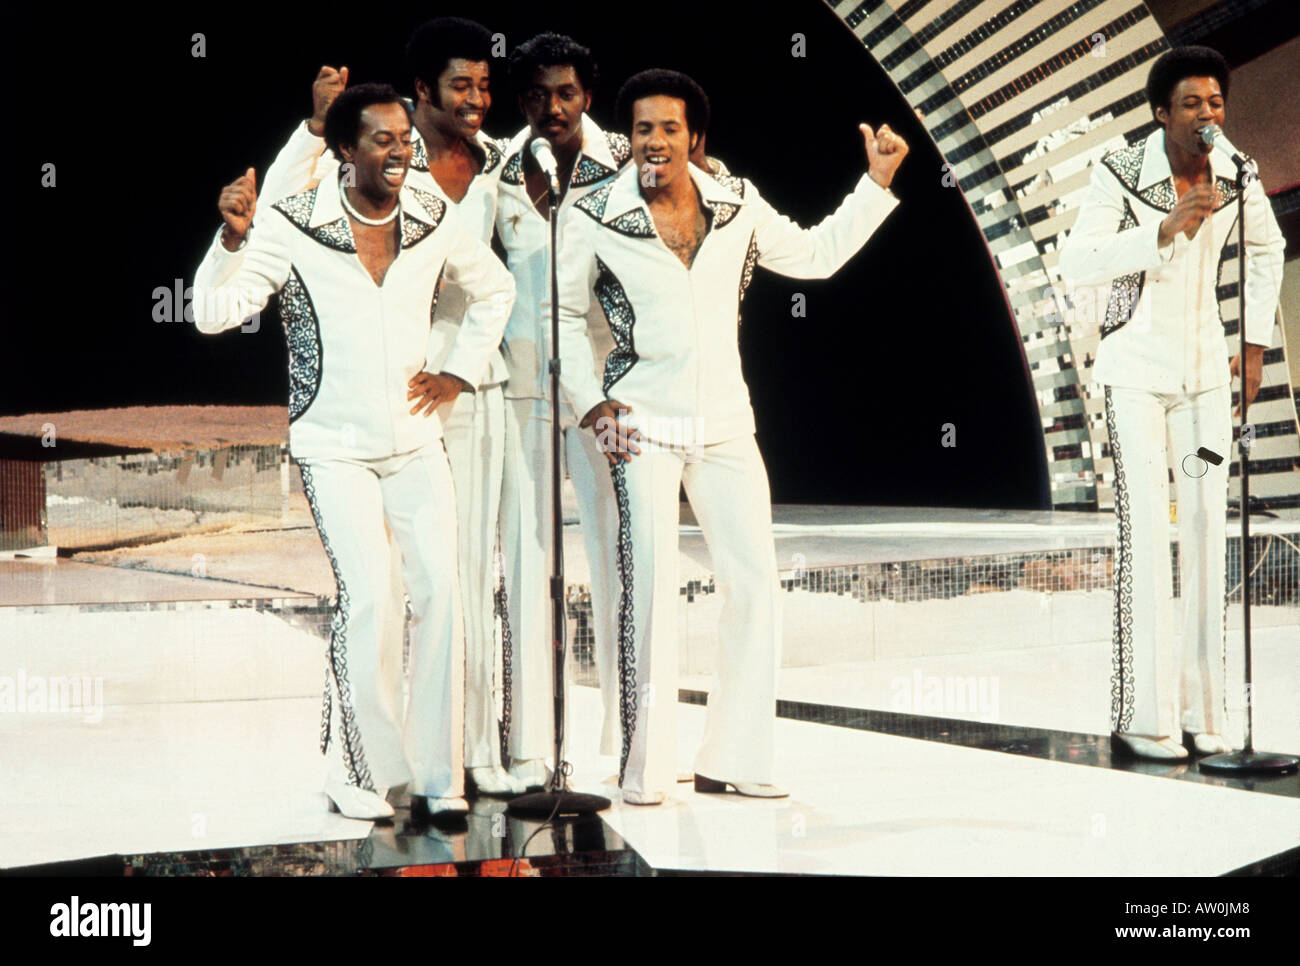 TEMPTATIONS US group in late 80s - Stock Image